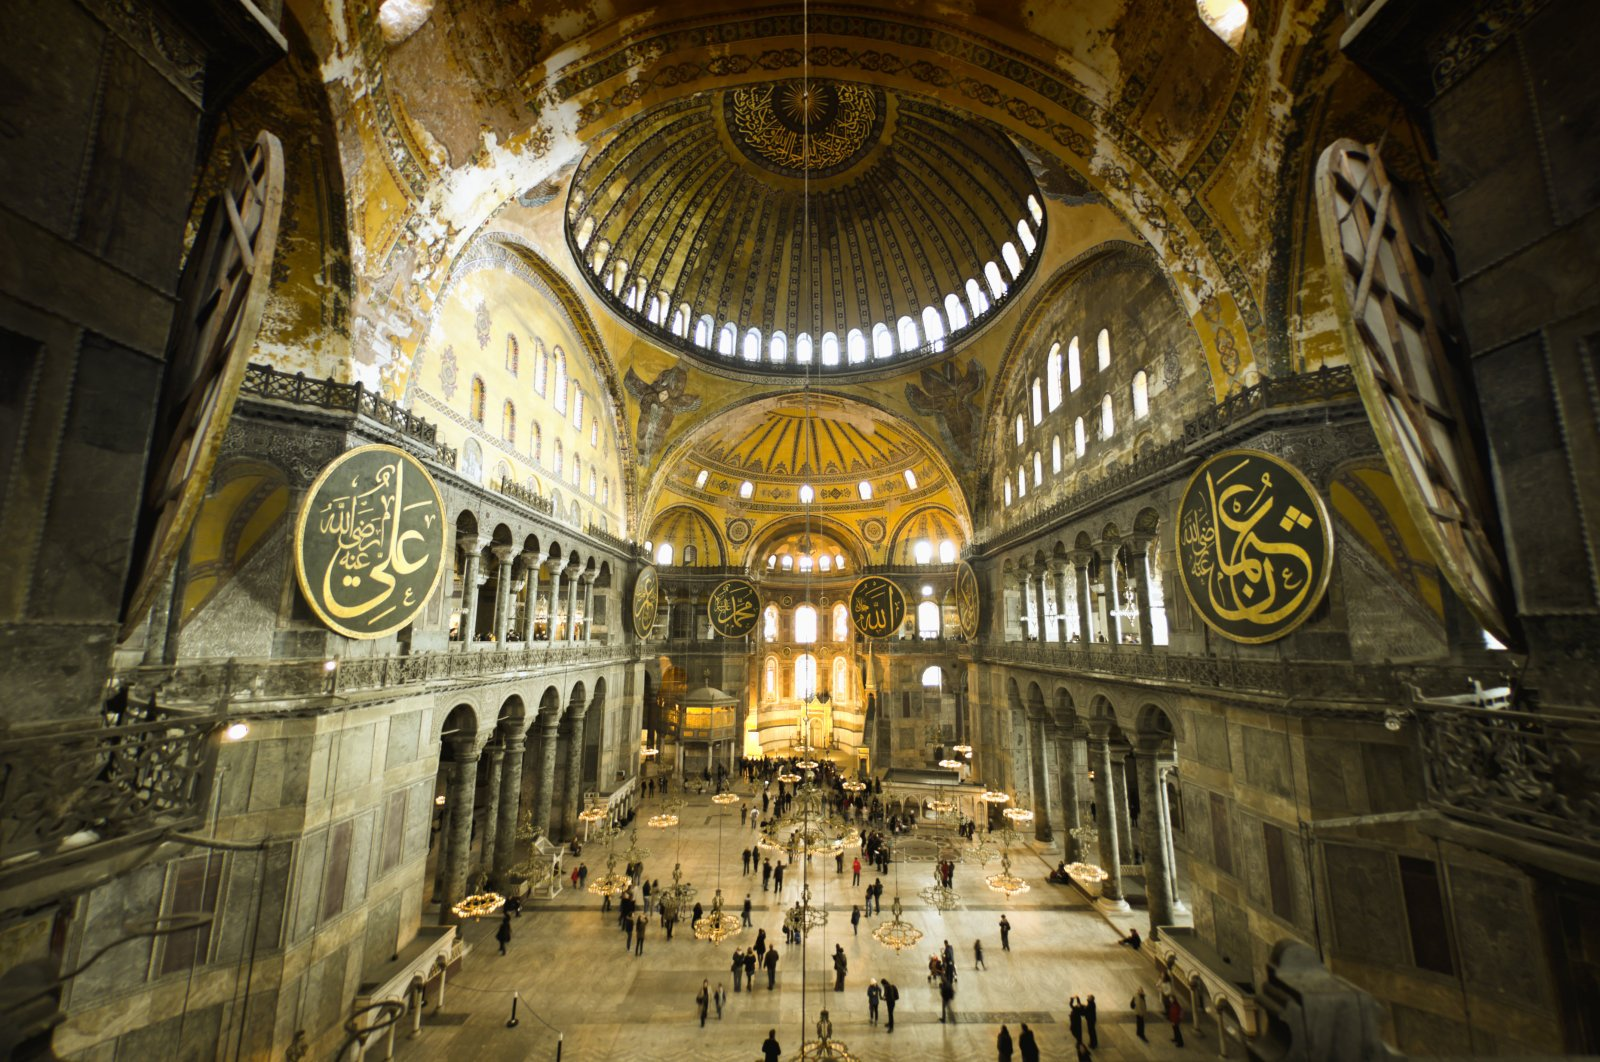 Hagia Sophia indoors captured with a fish-eye lens.